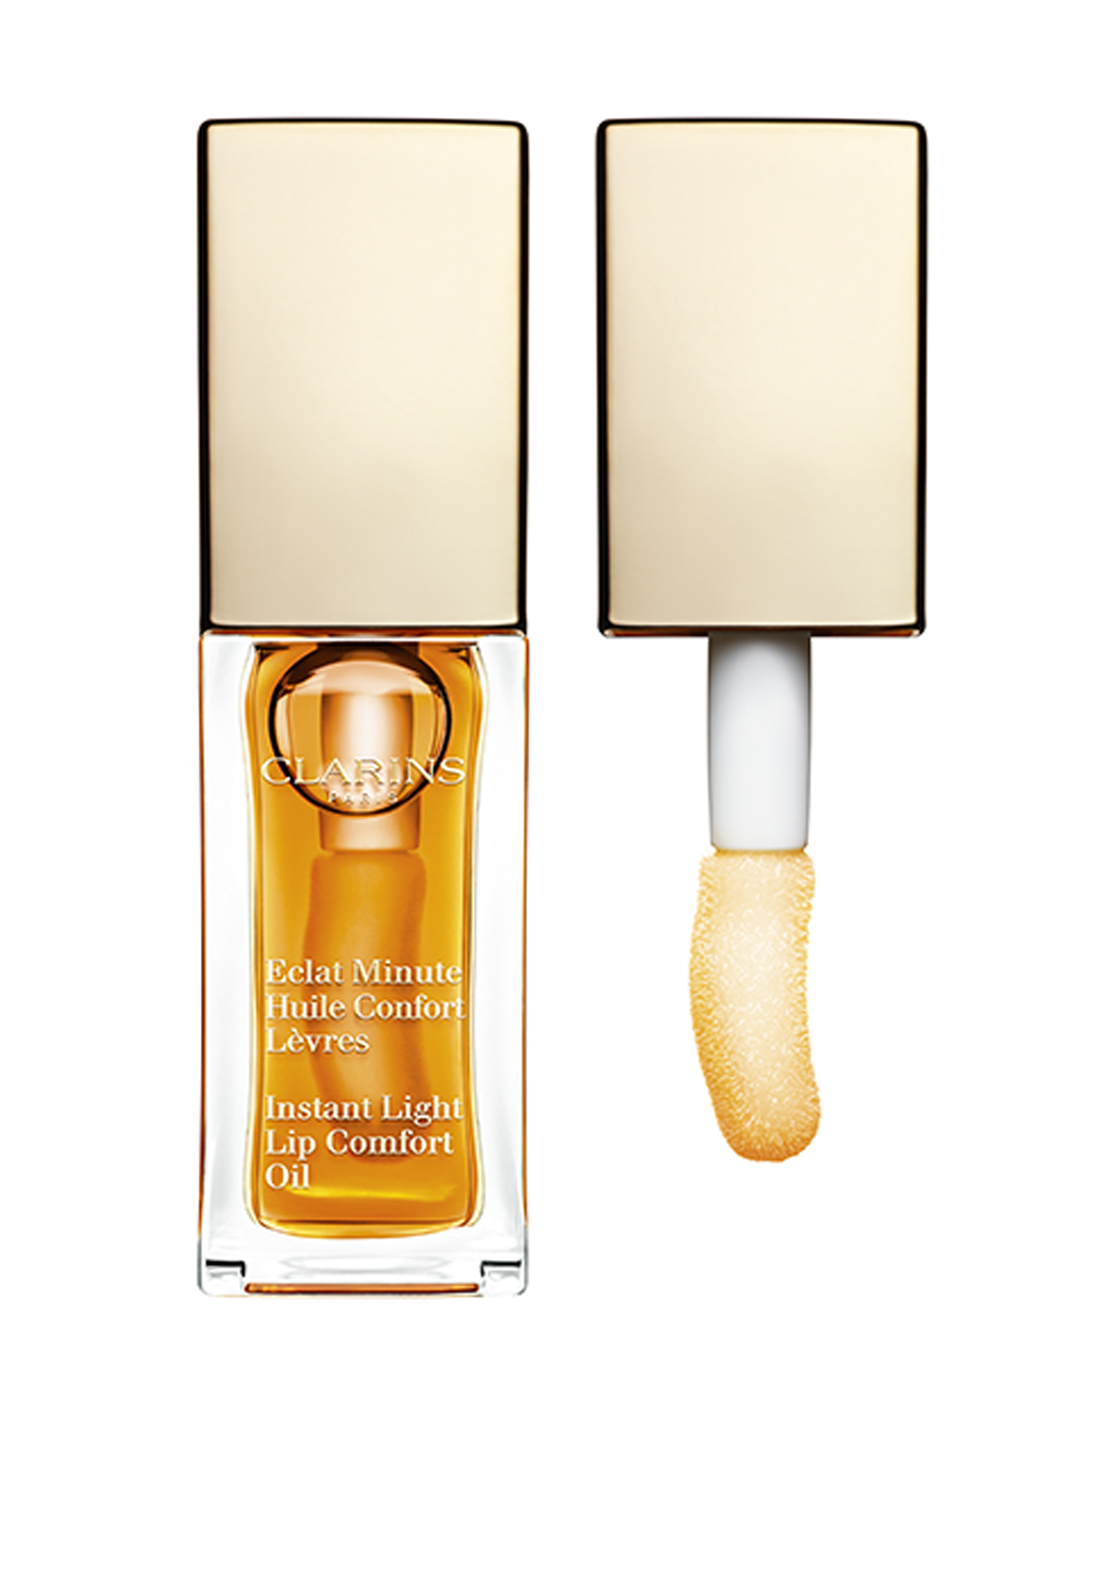 Clarins Eclat Minute Instant Light Lip Comfort Oil, 01 Honey